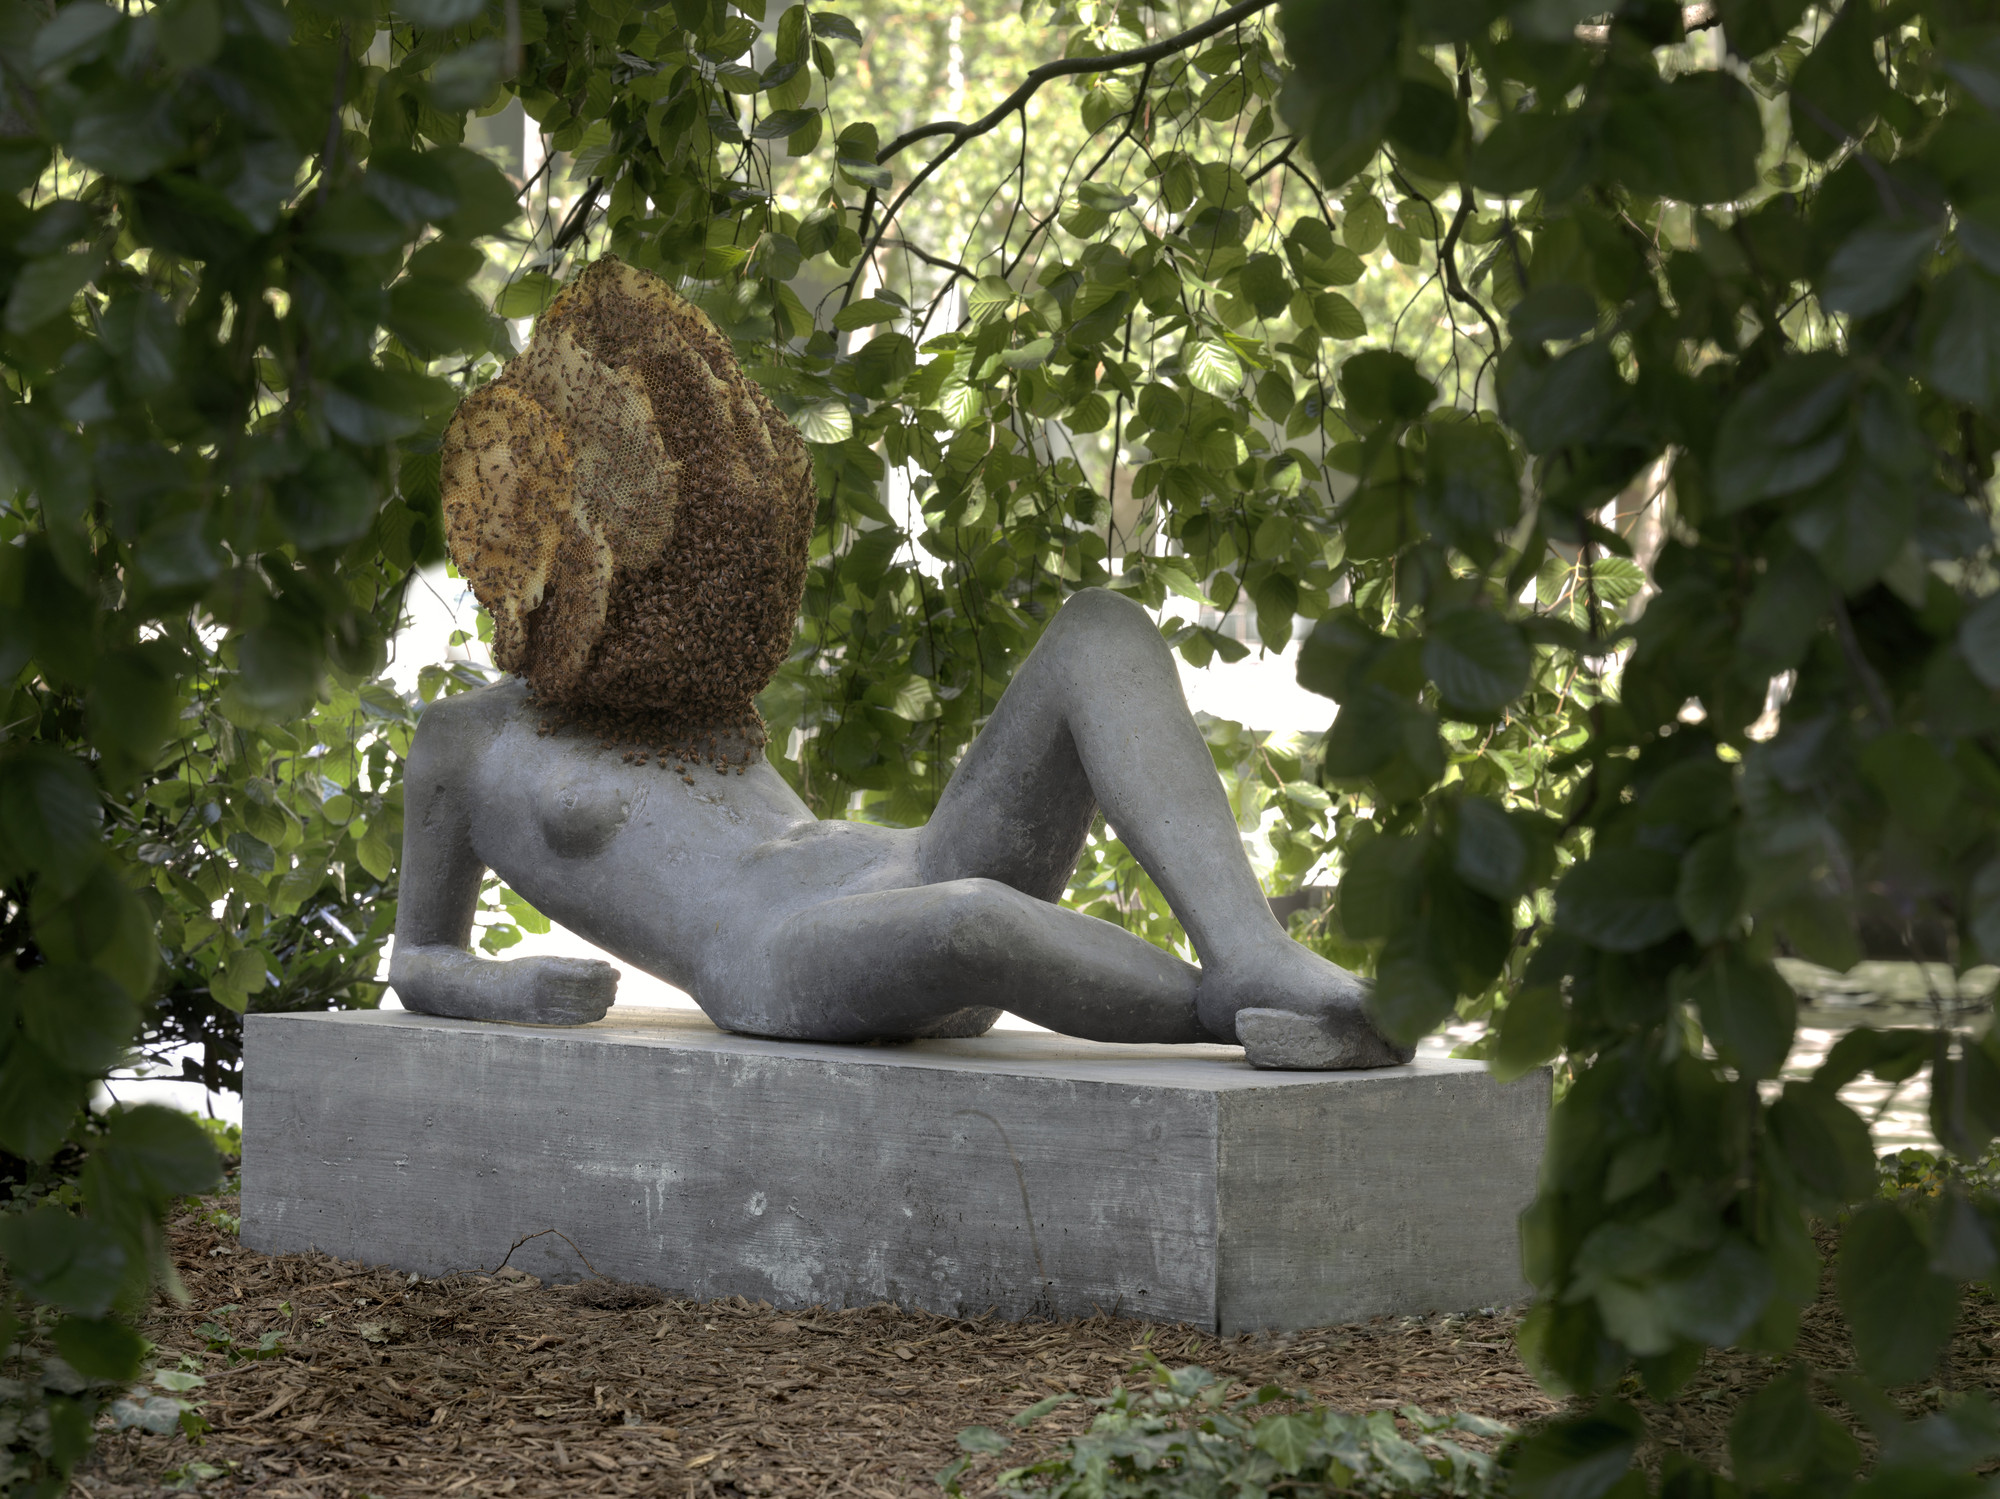 Pierre Huyghe. Untilled (Liegender Frauenakt). 2012